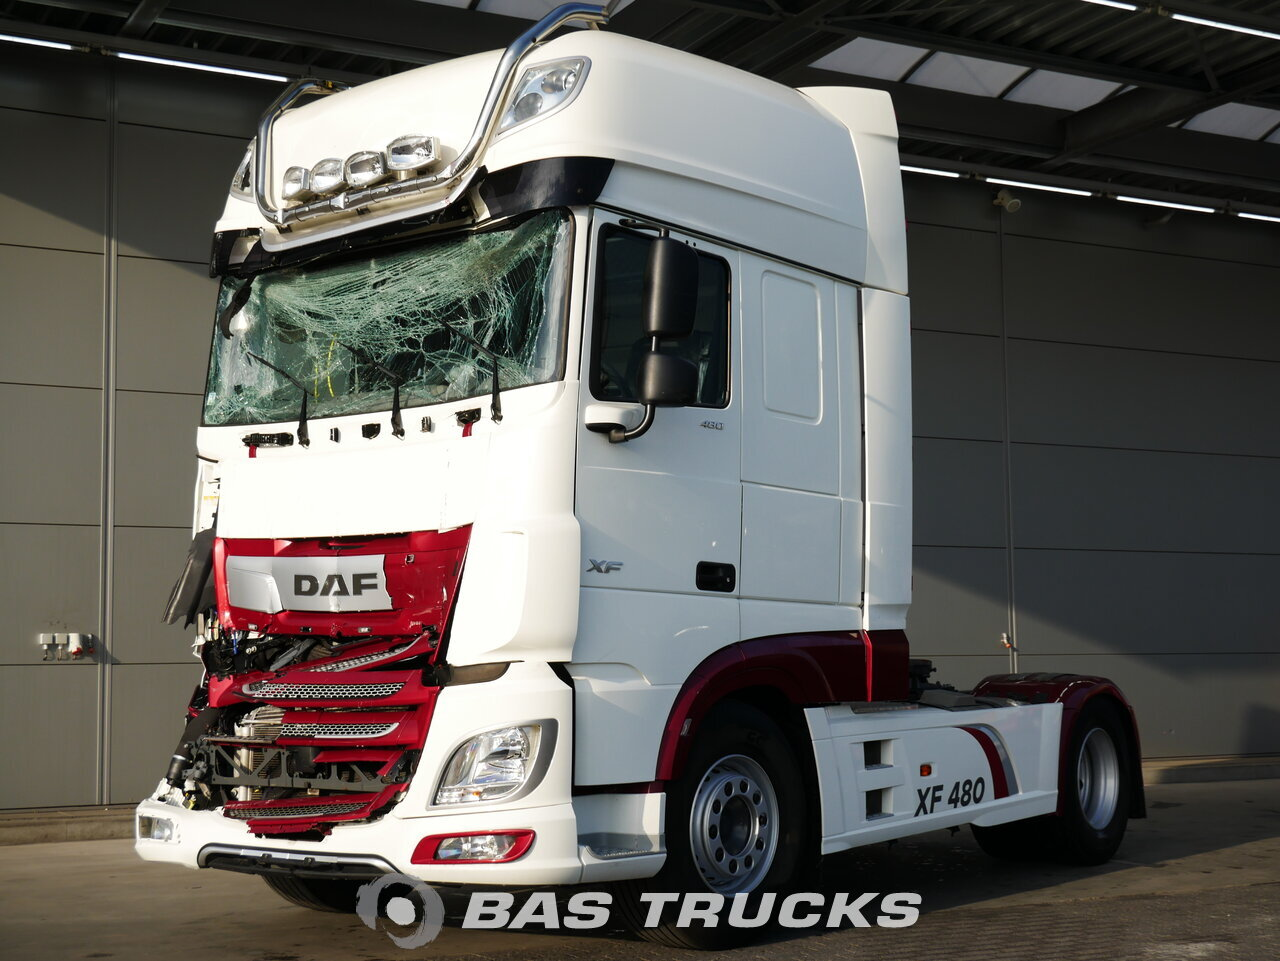 For sale at BAS Trucks: DAF XF 480 SSC Unfall 4X2 12/2017